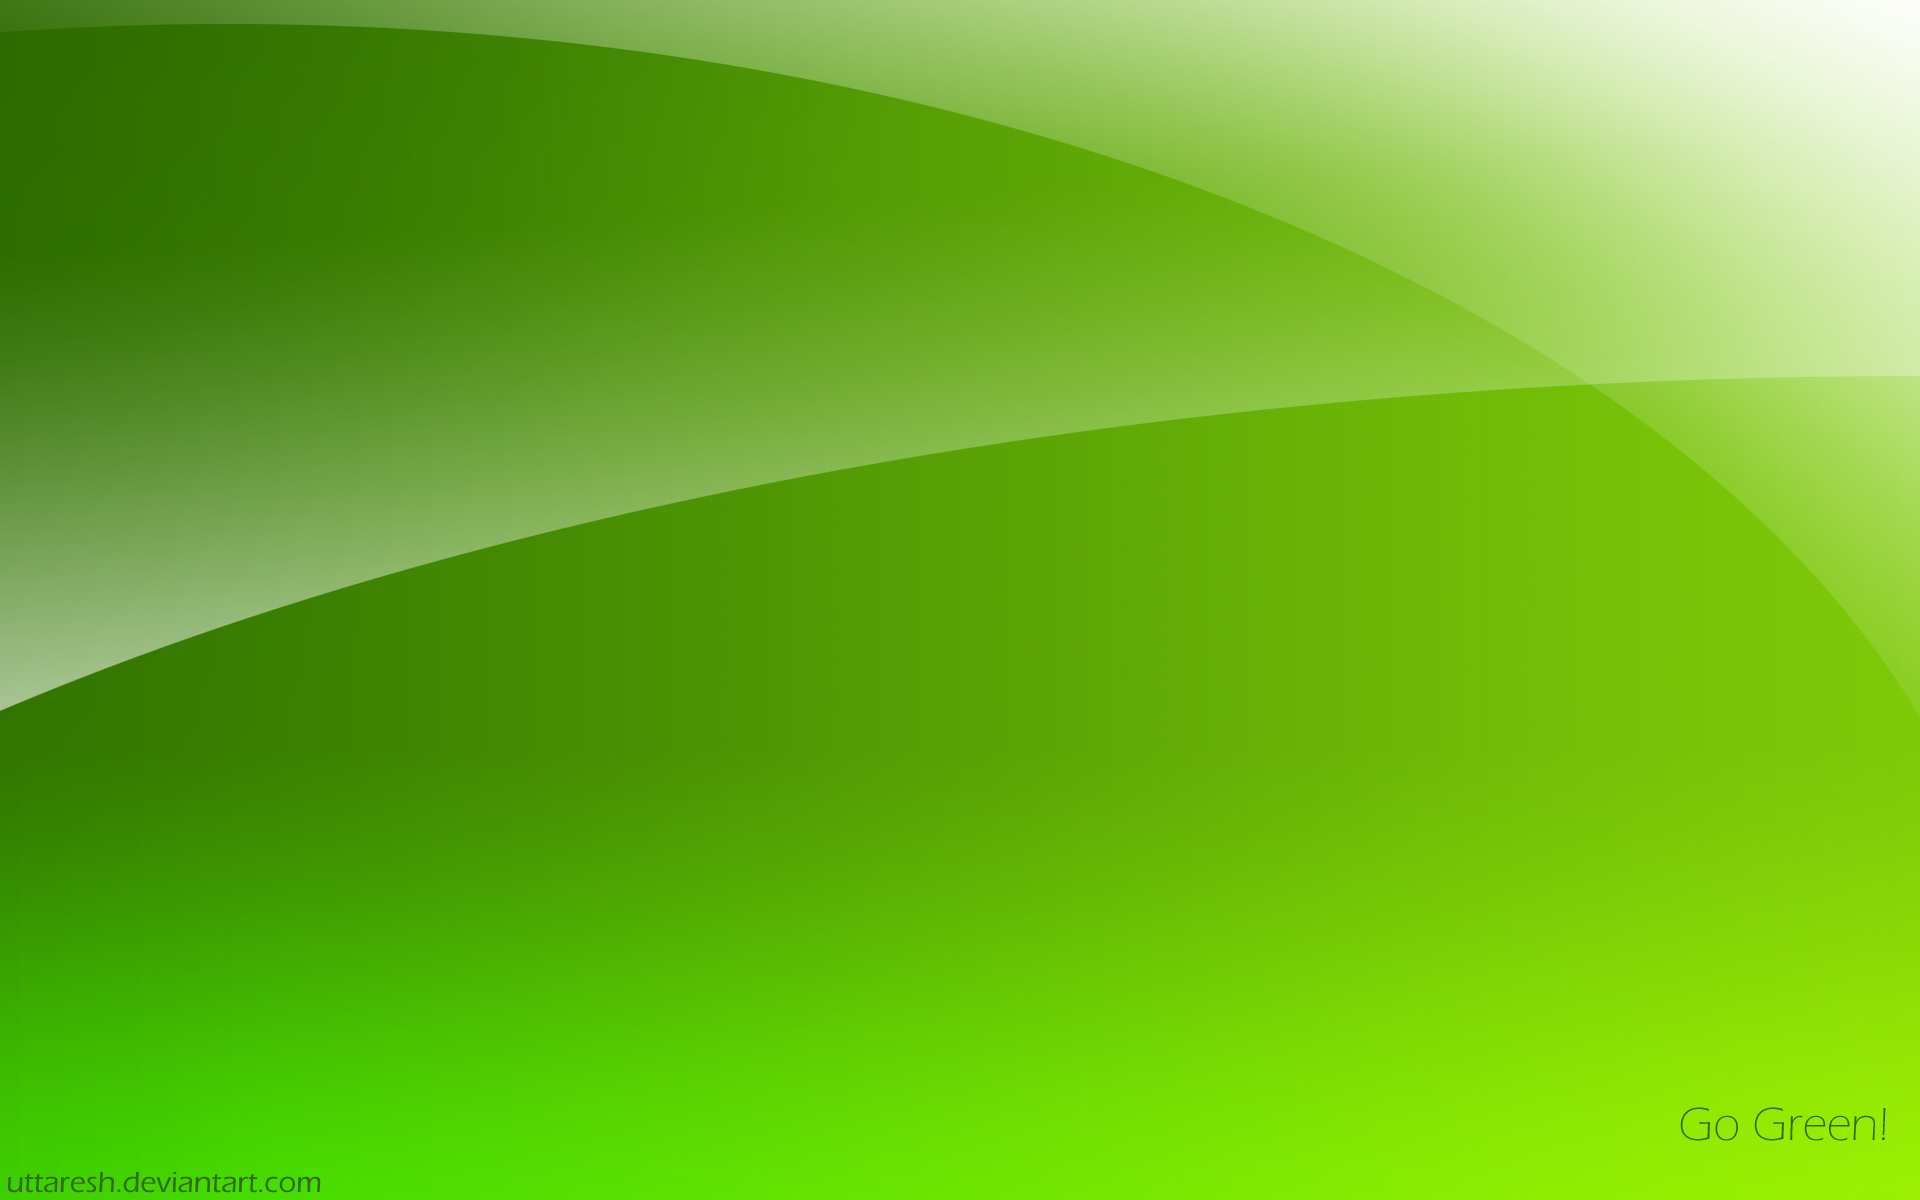 Hd wallpaper green -  Green Wallpaper 8